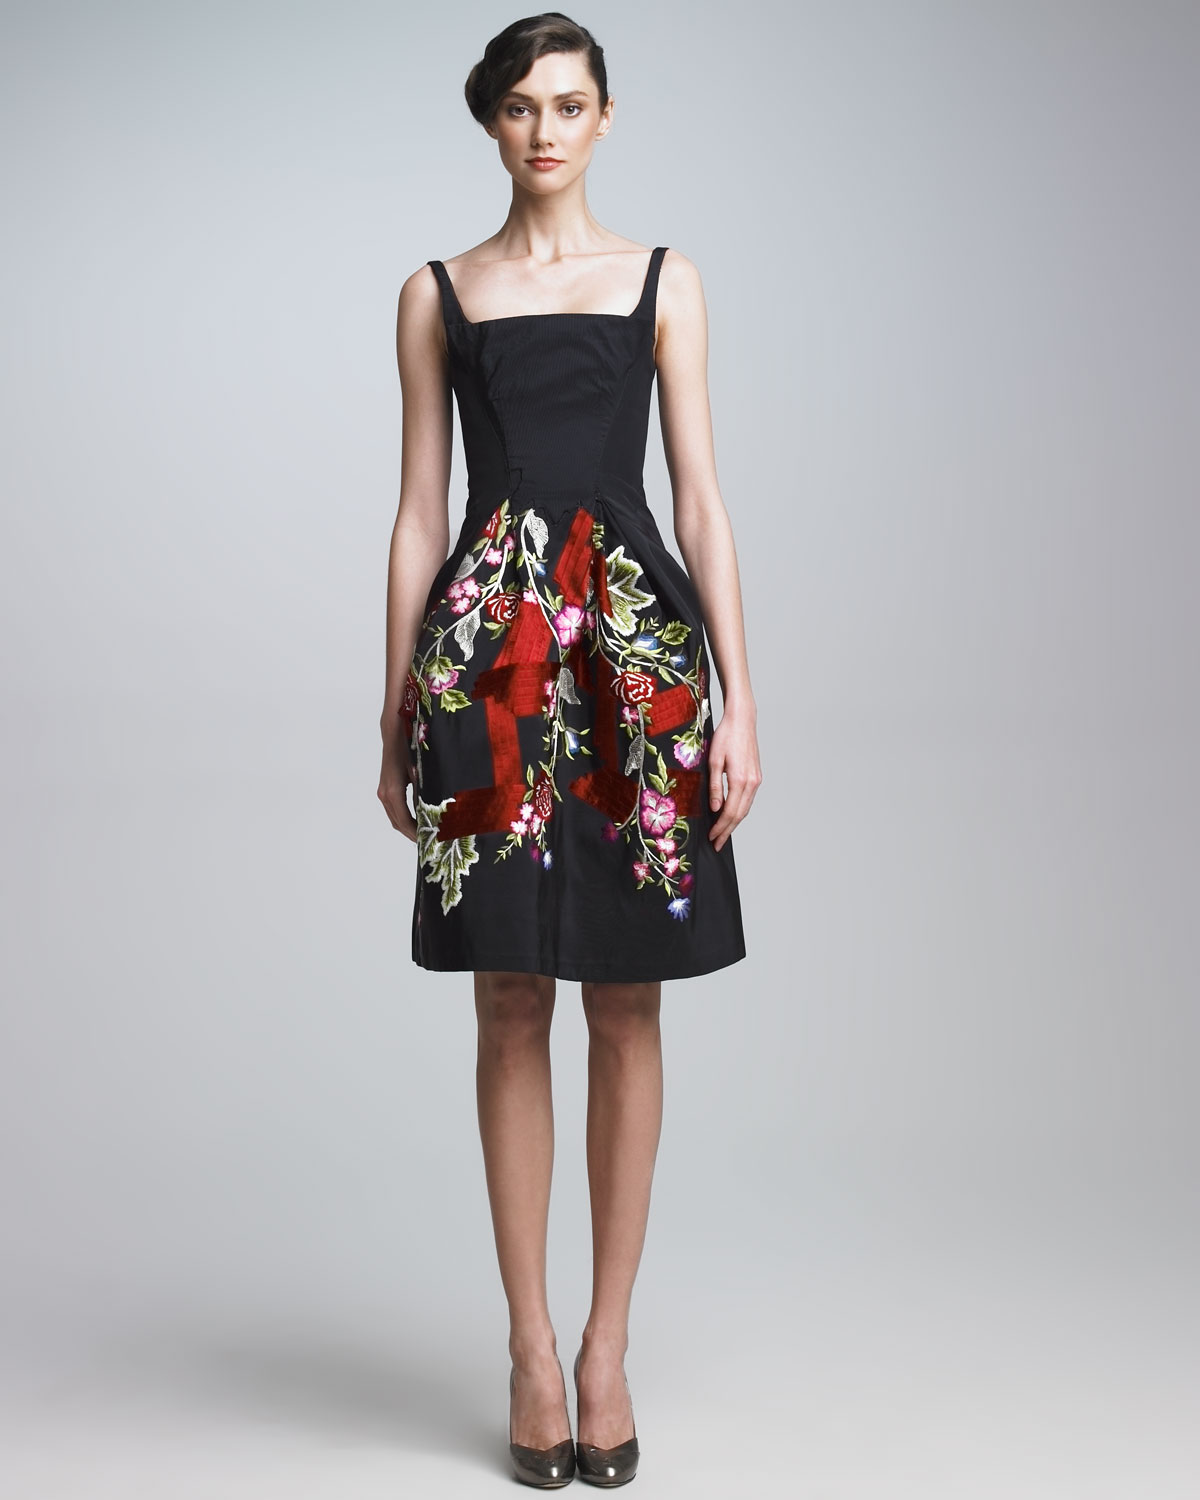 Zac Posen Embroidered Cocktail Dress In Black Lyst